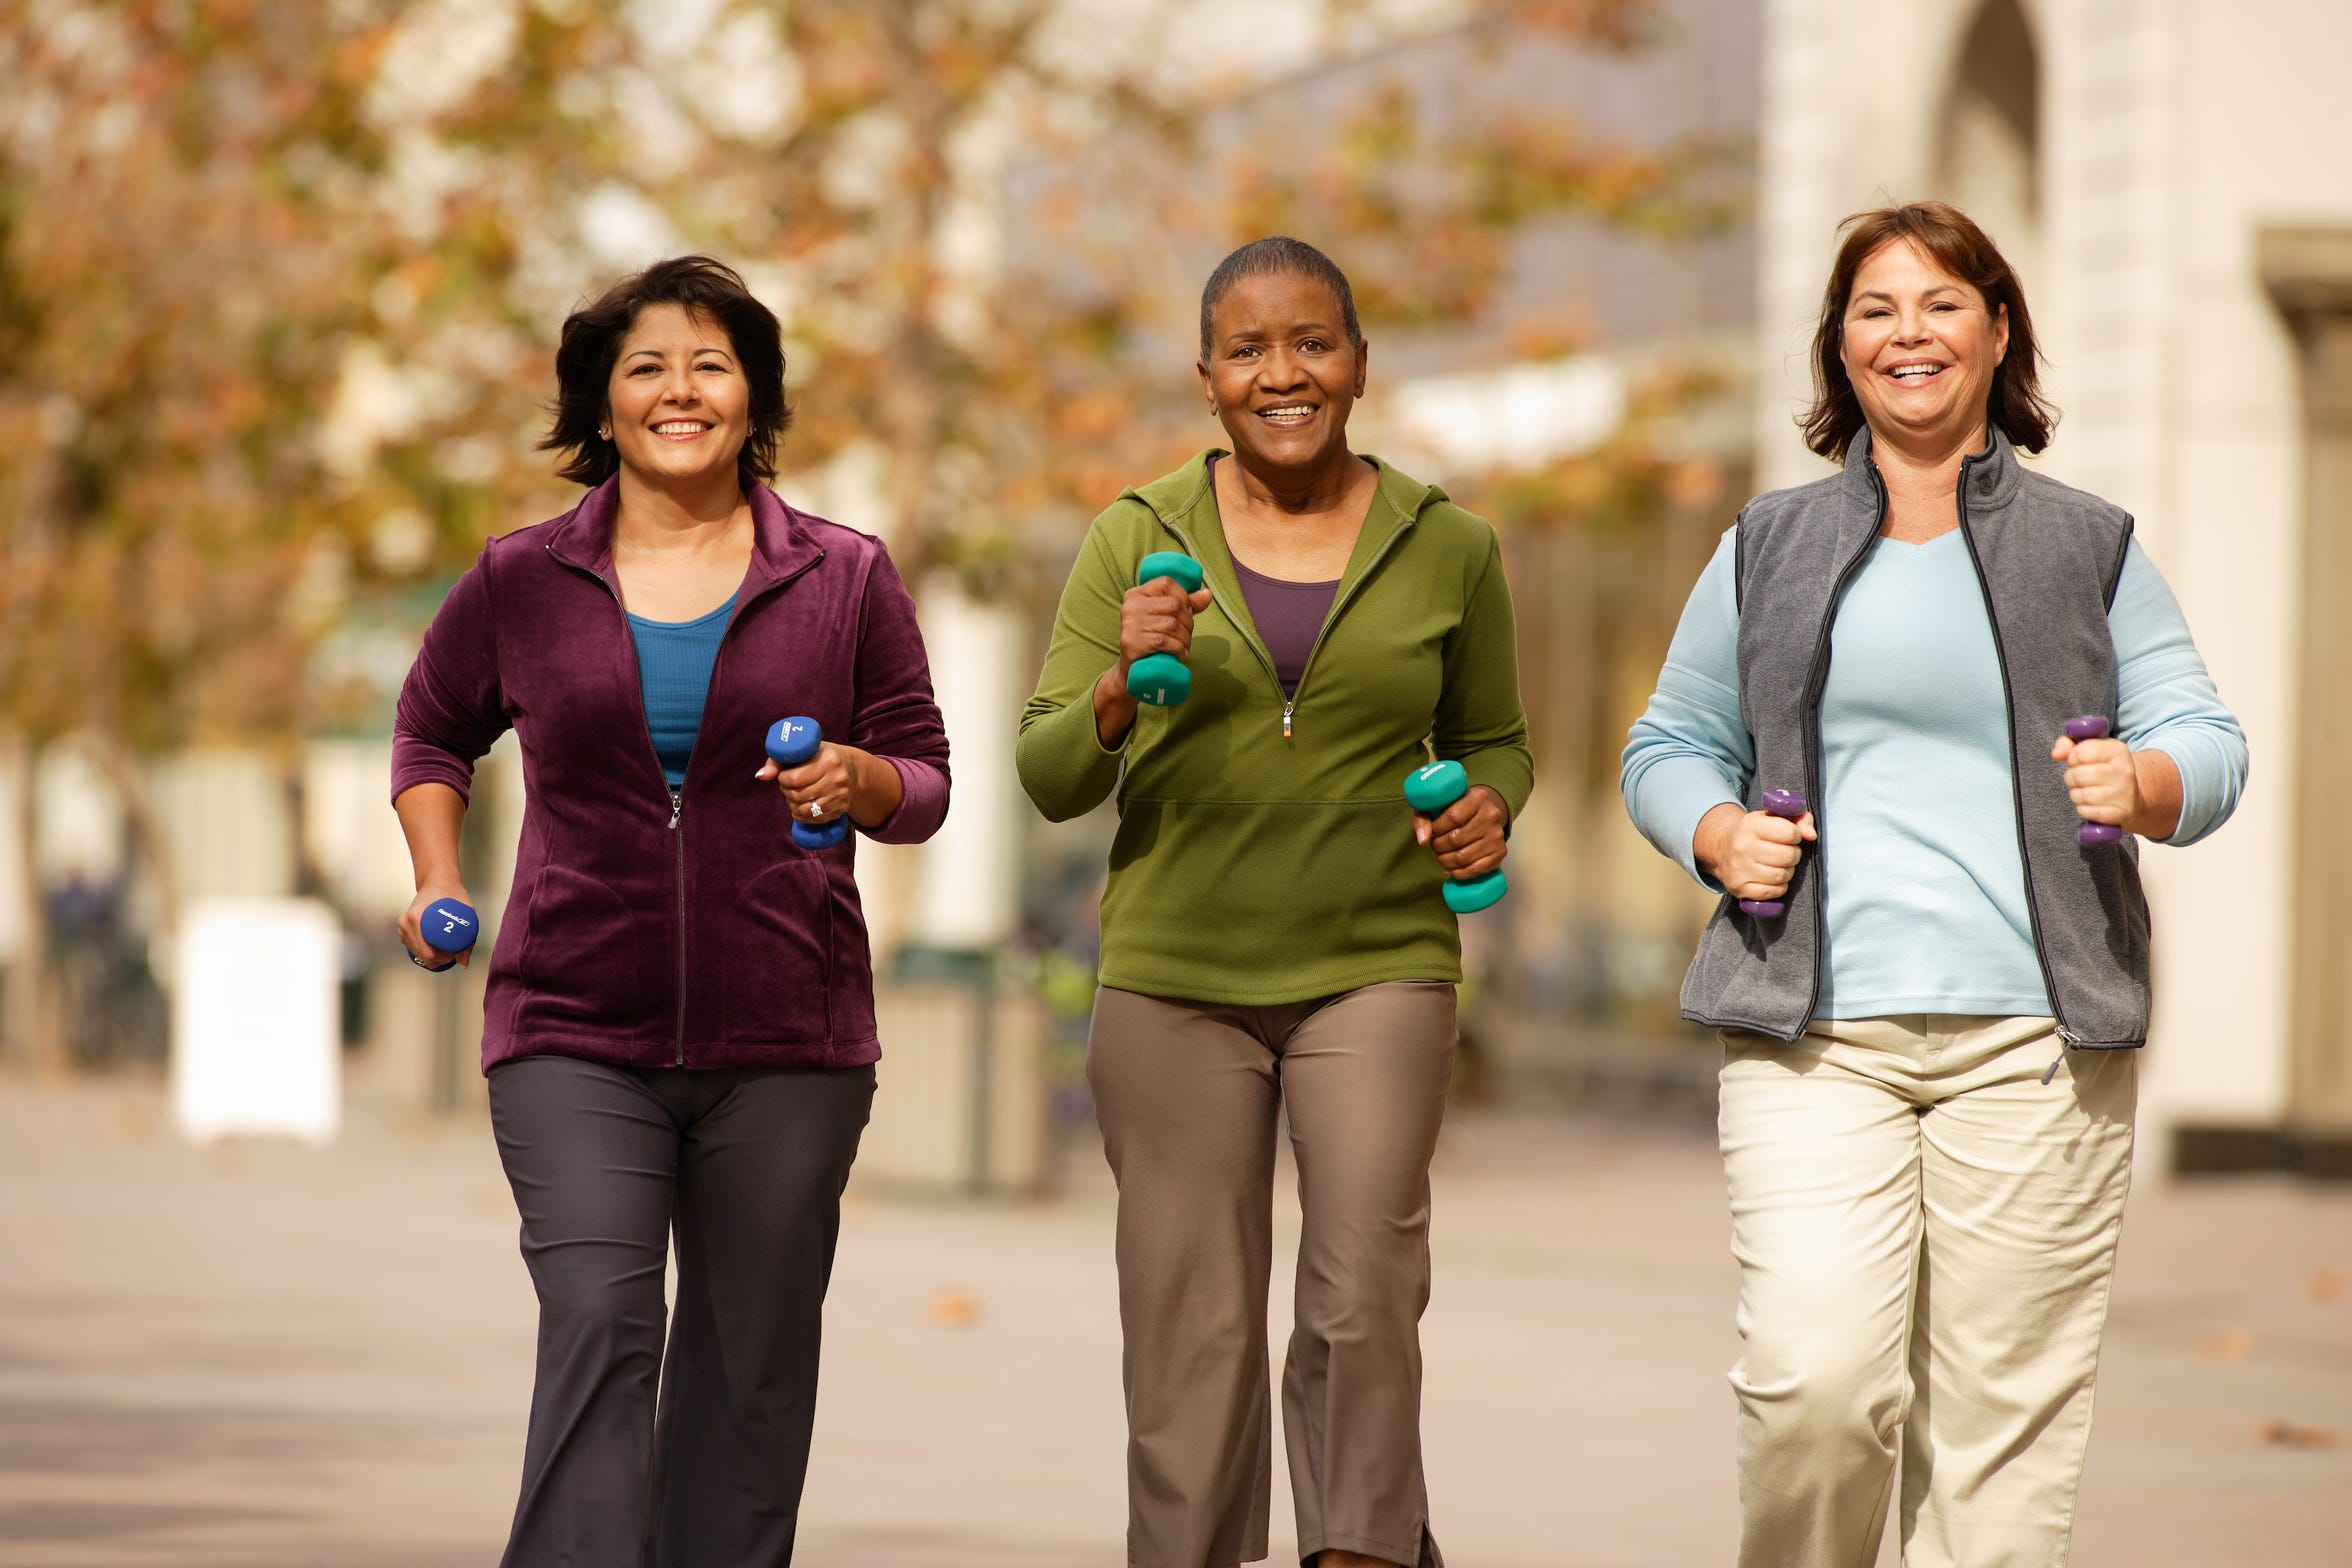 Getting healthy doesn't have to be a solo act. Grab some friends and start a walking group.